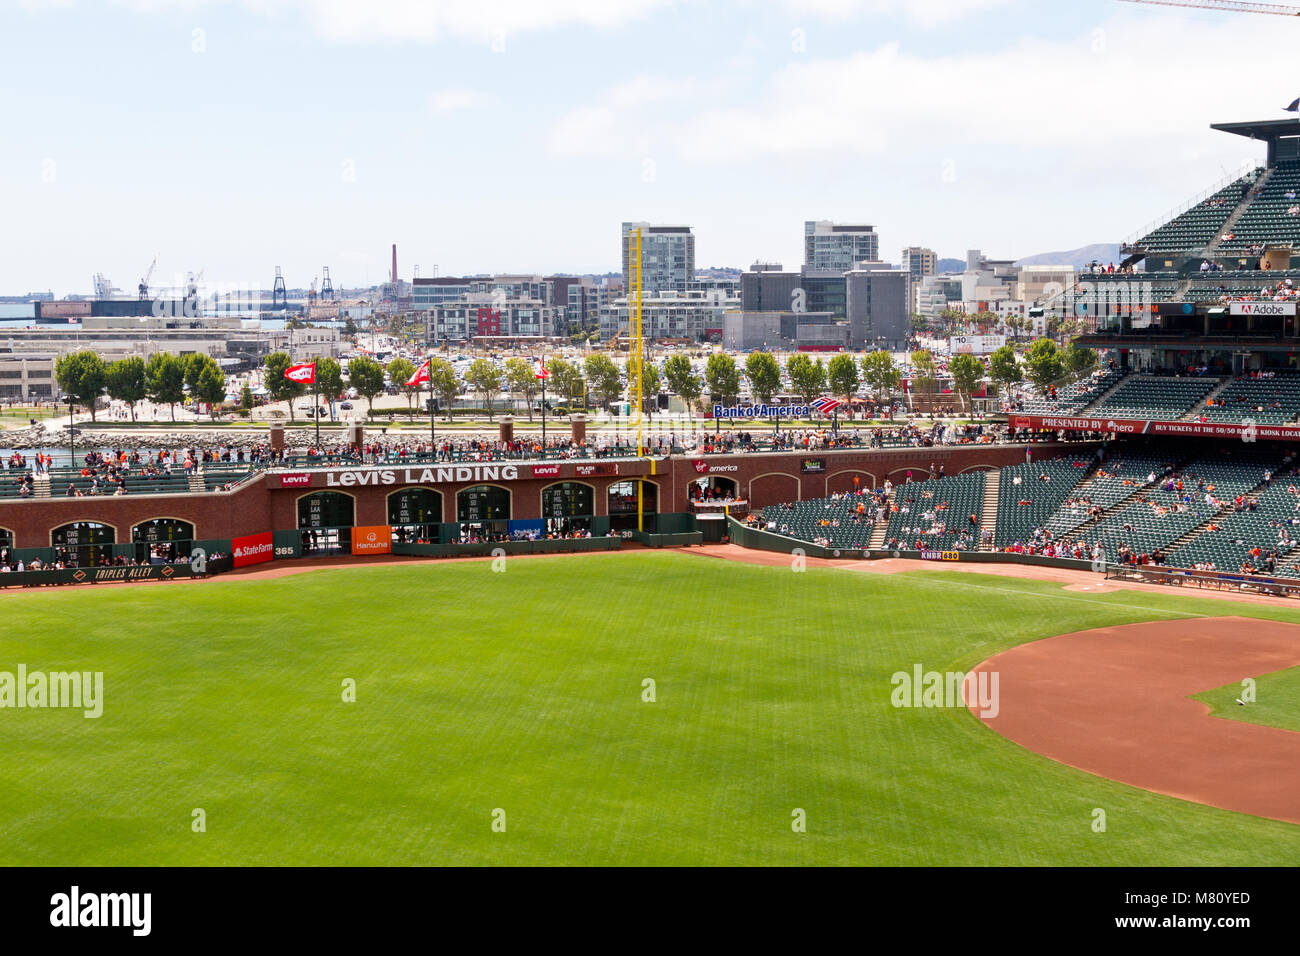 View of right field at AT&T Park, home of the San Francisco Giants. - Stock Image